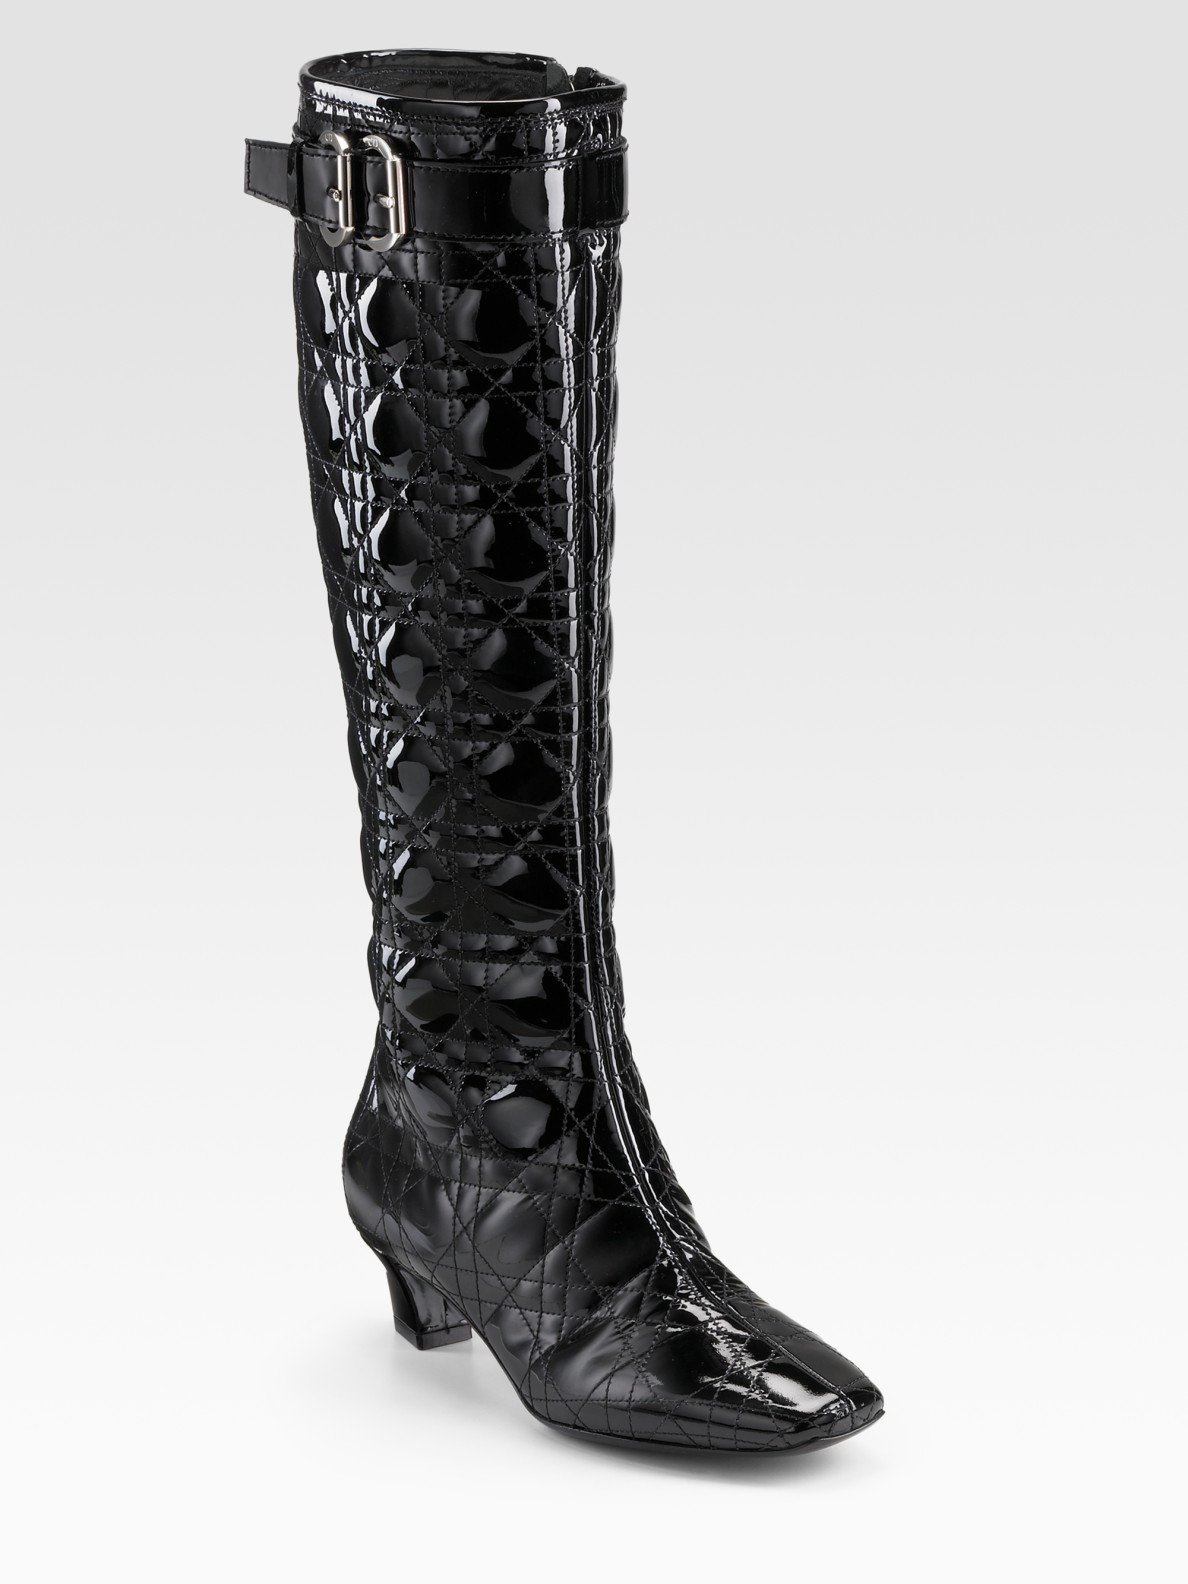 Dior Cannage Patent Leather Boots In Black Lyst